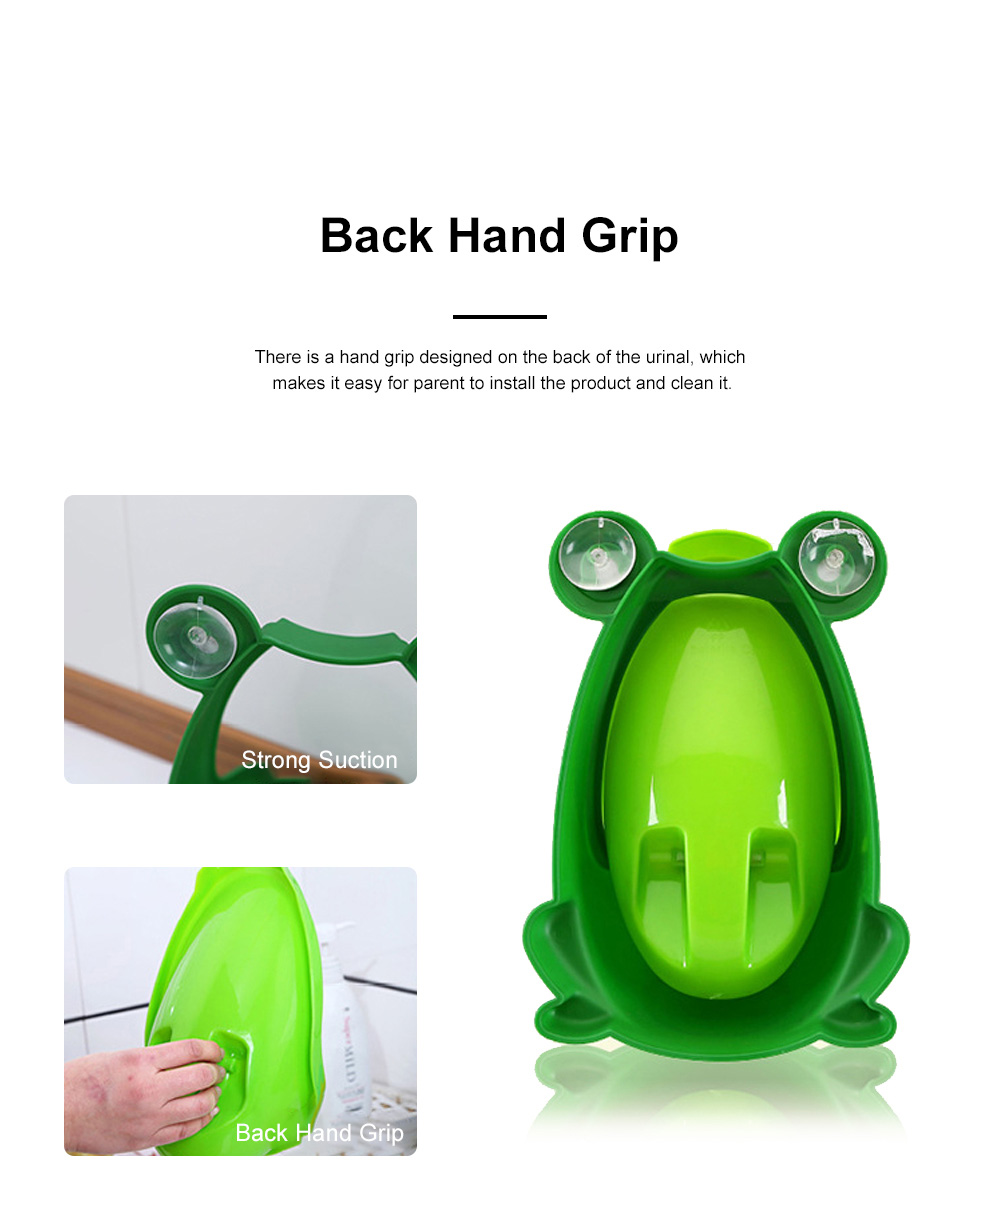 Cute Frog Model Wall Hanging Children Standing Urinal Separable Strong Suction Toilet Training for Boys 2